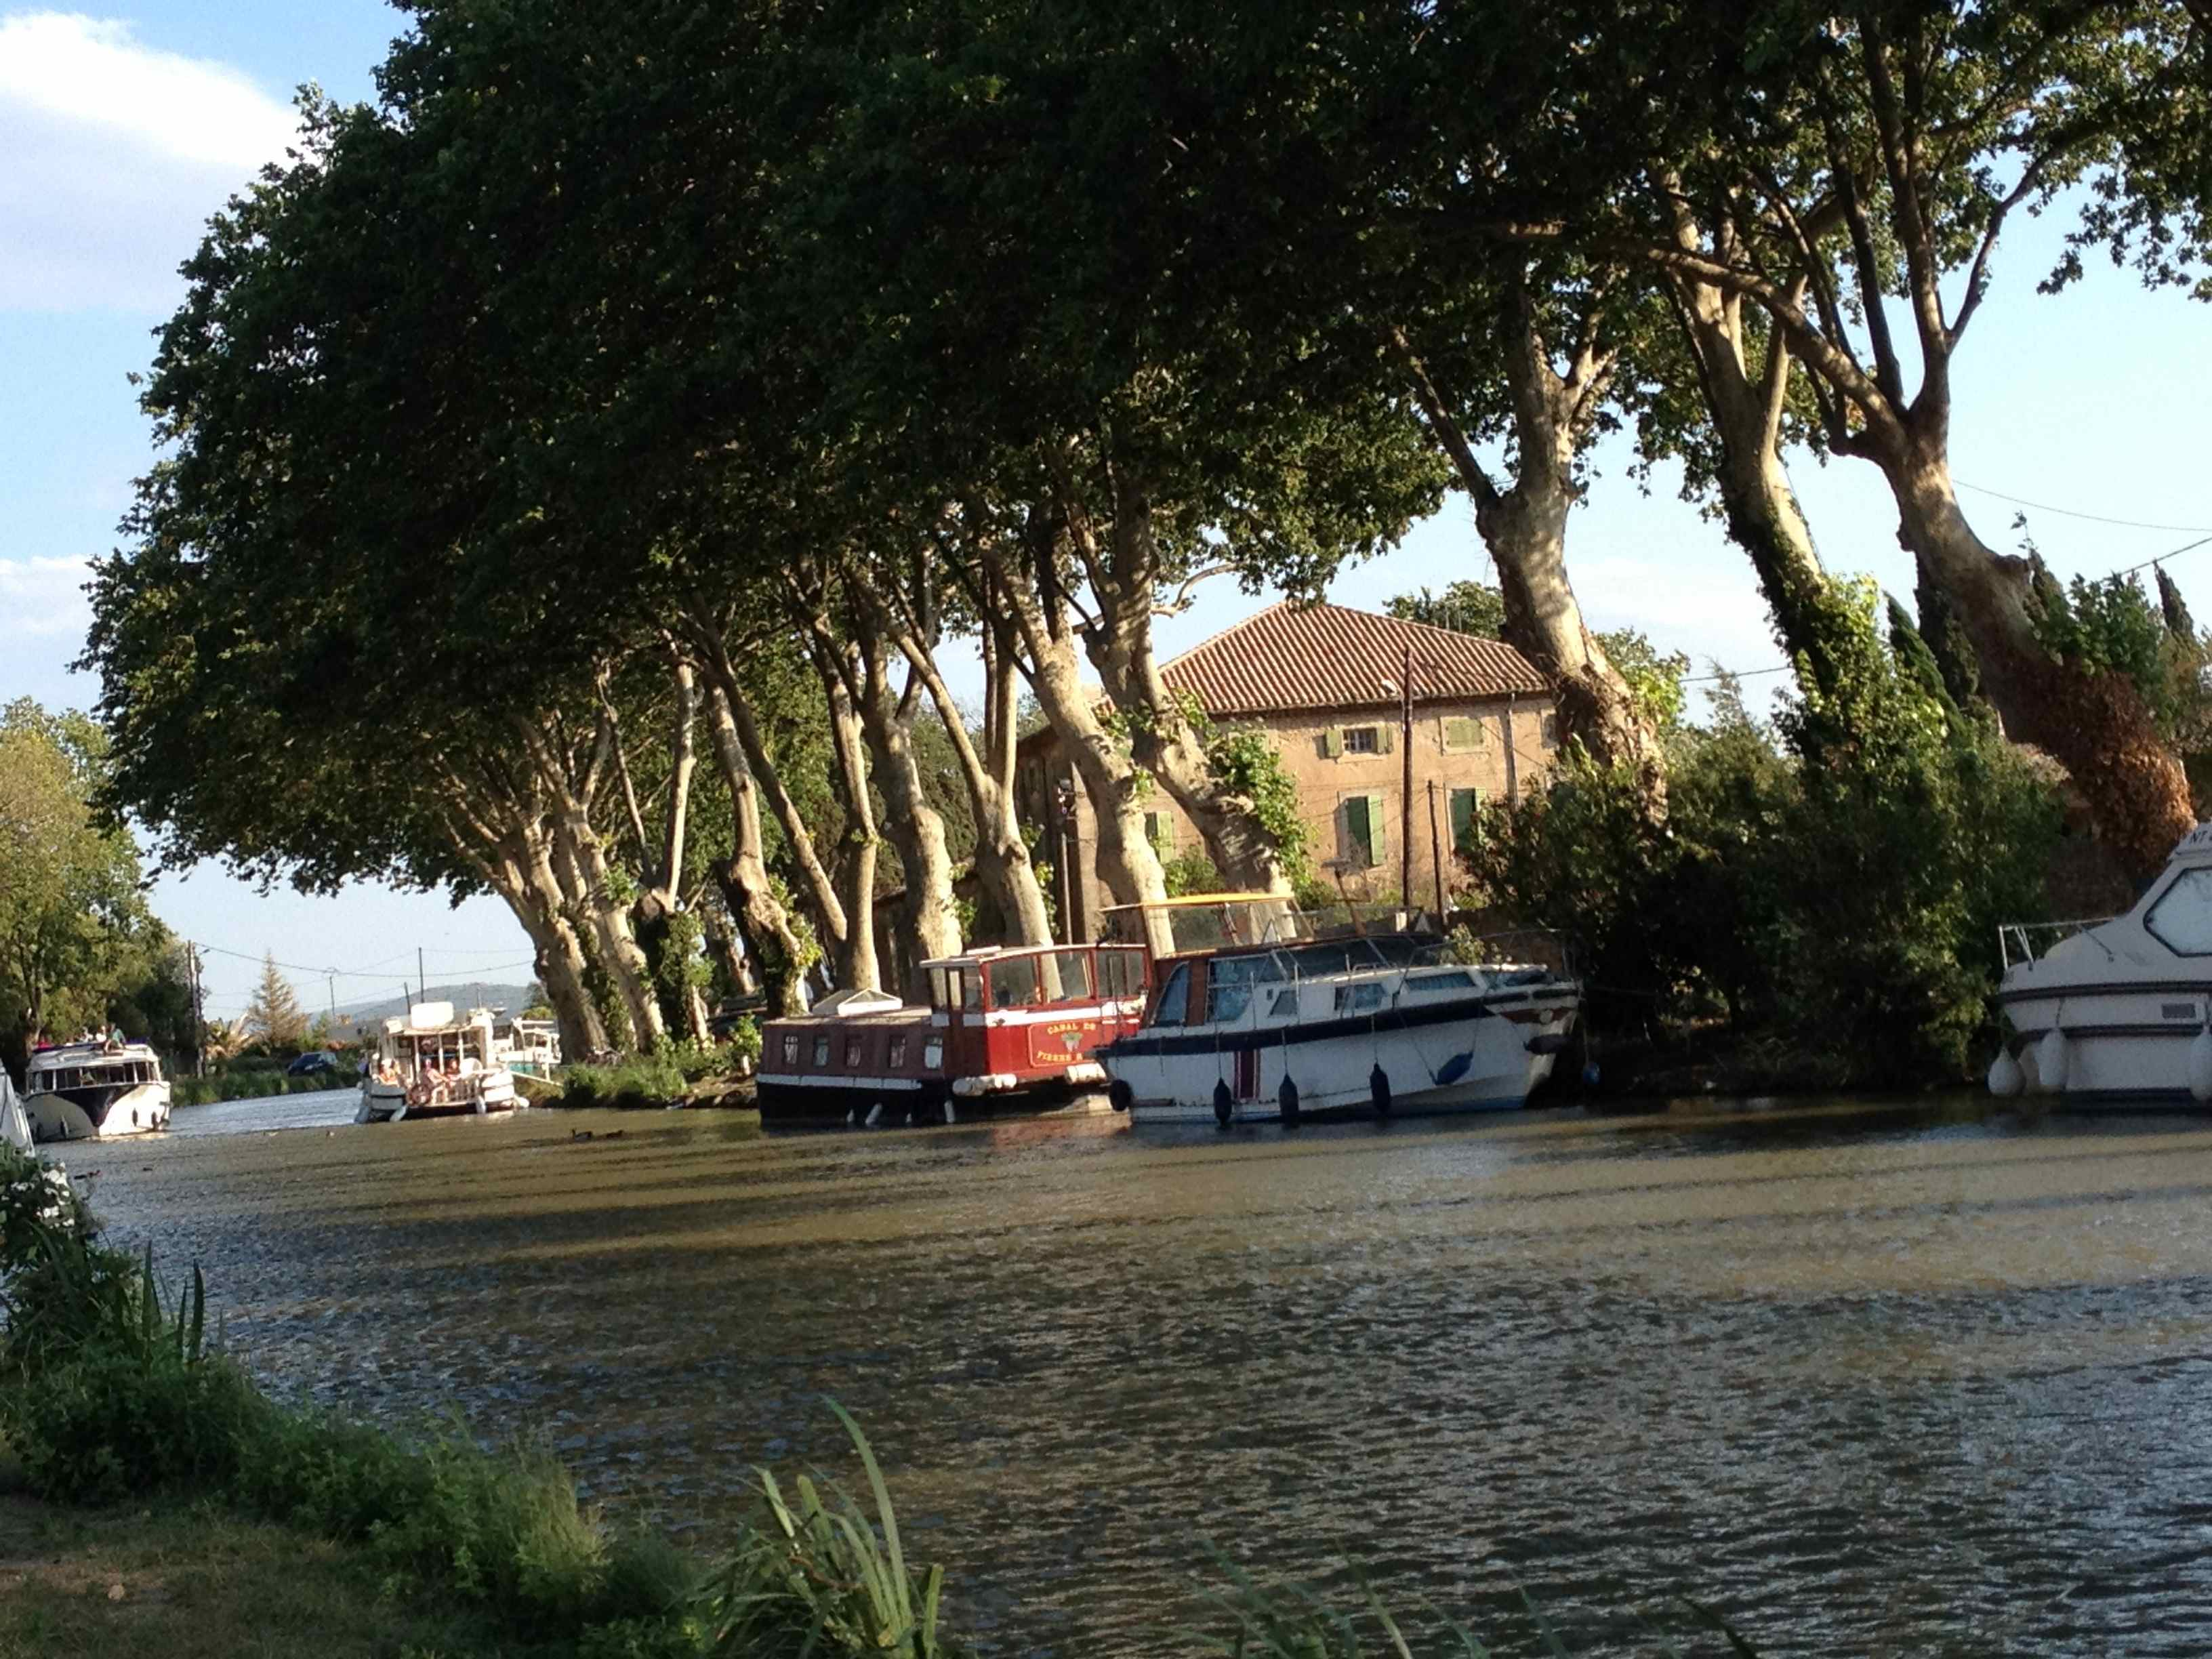 Boats on Canal du Midi at Le Somail